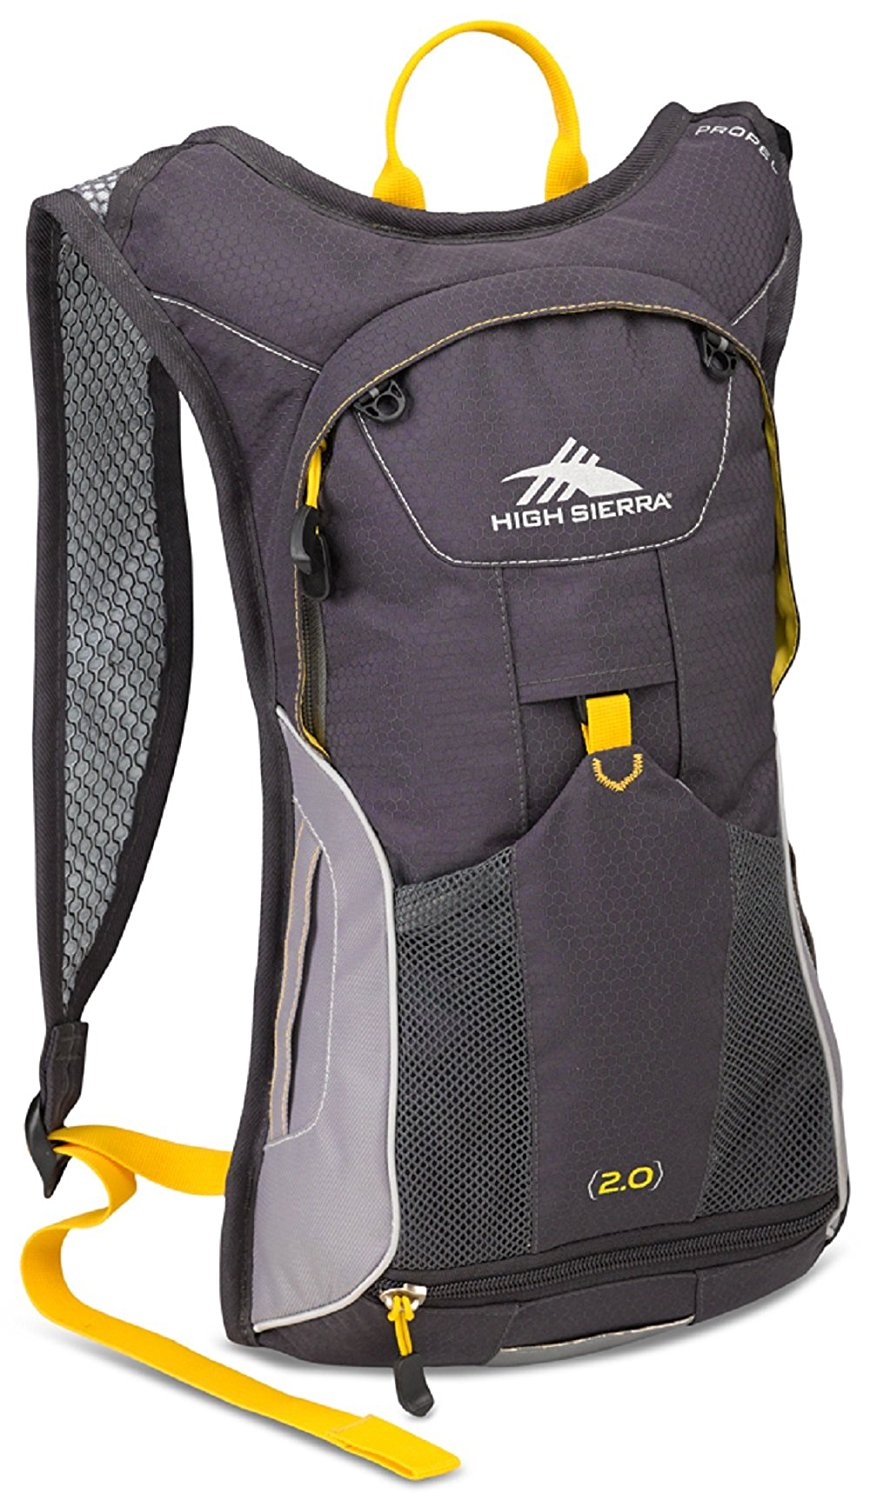 High Sierra Propel 70 Hydration Backpack Pack with 2L BPA Free Bladder: Perfect for Hiking, Running, Cycling, Biking, Climbing, Hunting, and Outdoor Activities